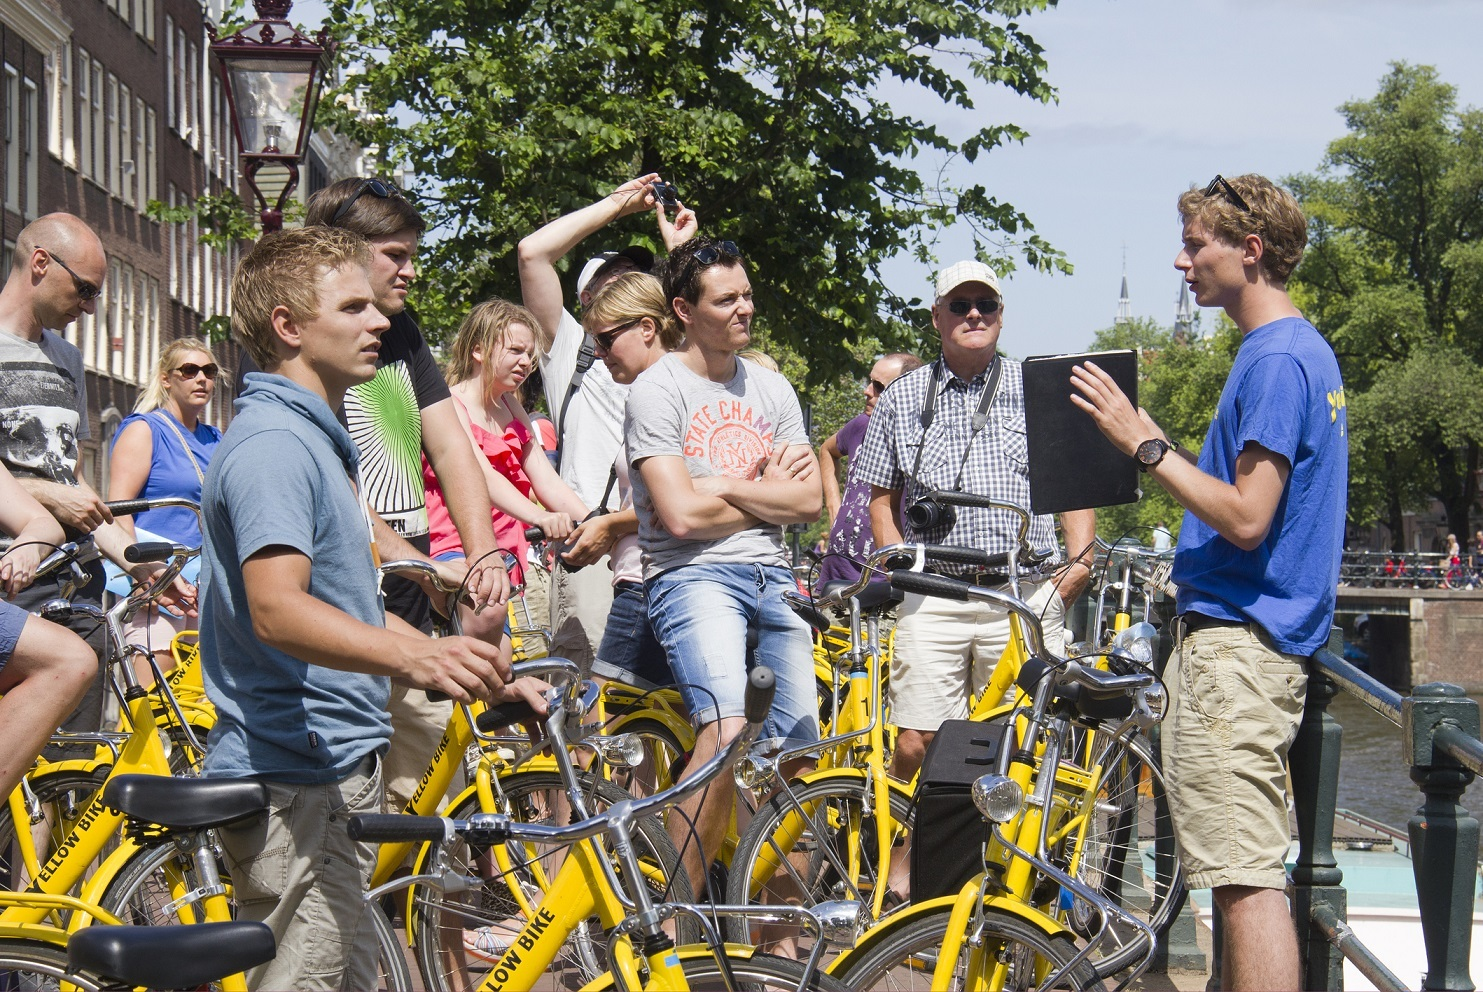 Tourists on bikes in Amsterdam for guided tour